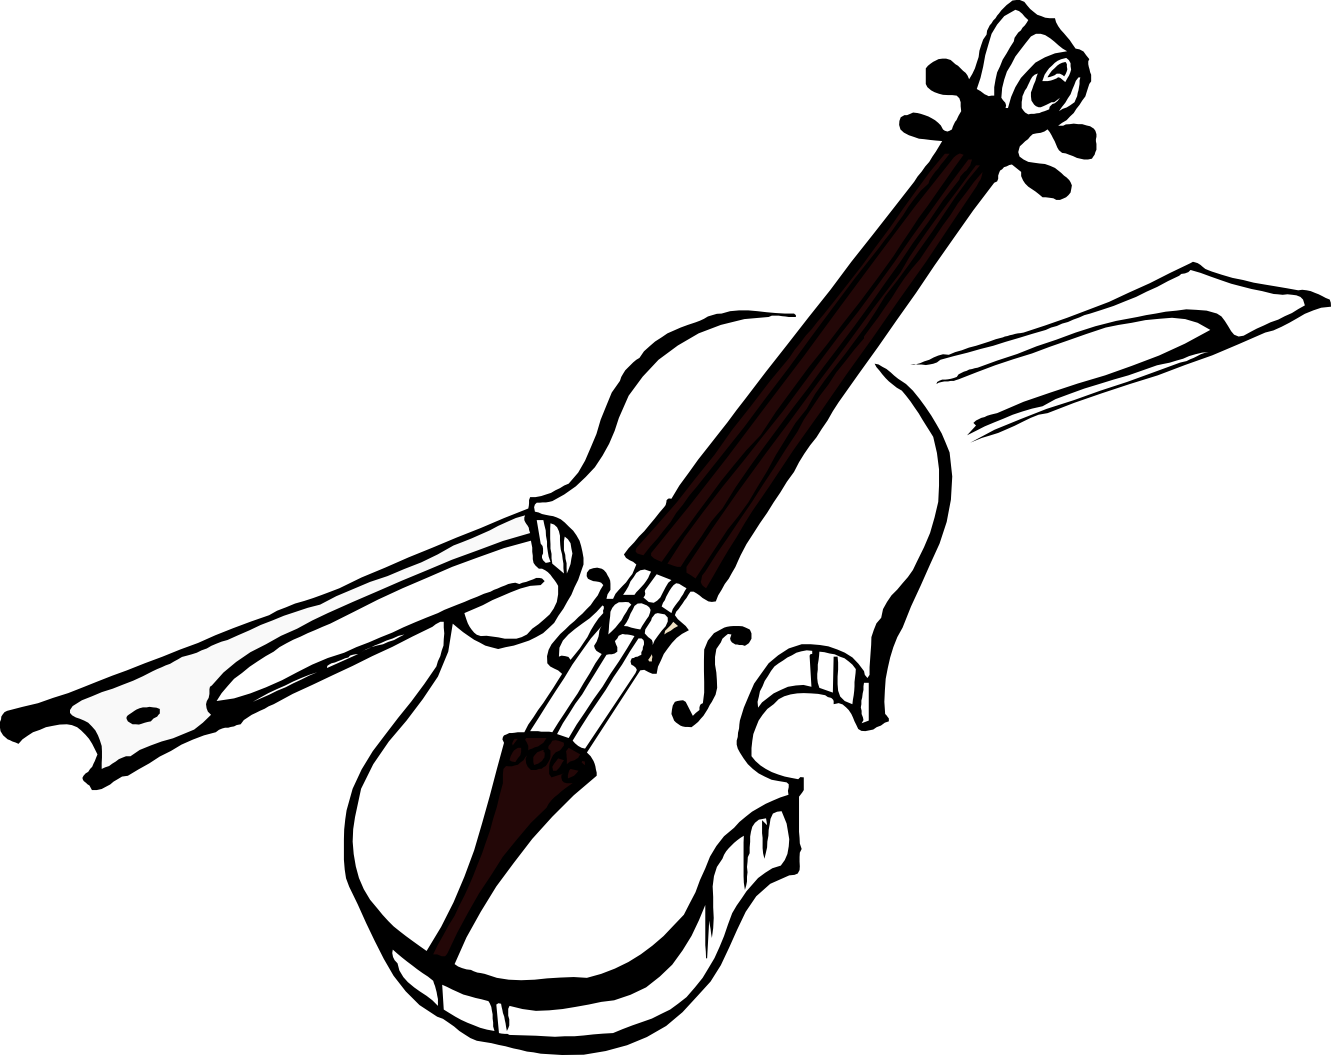 fiddle drawing observational